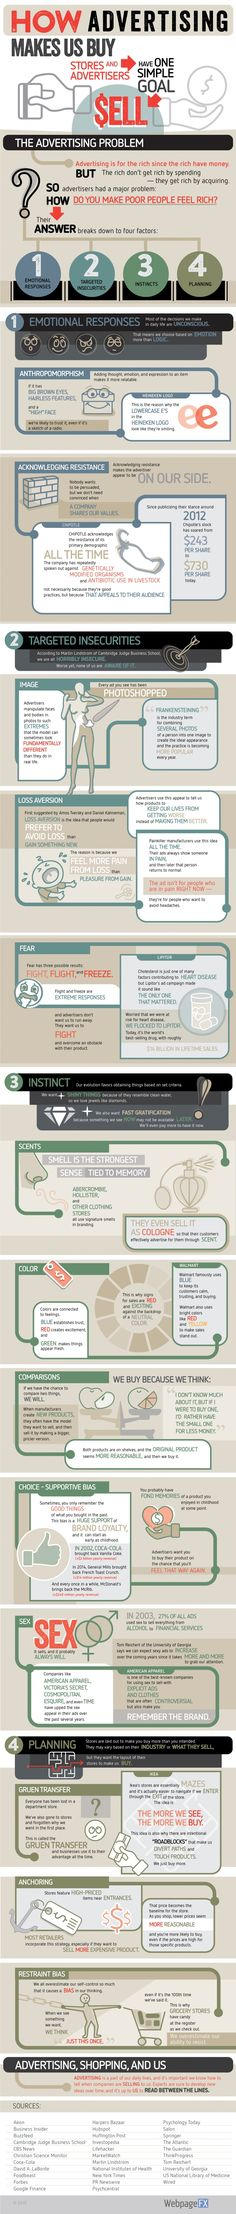 How Advertising makes Us Buy Infographic #Infographics